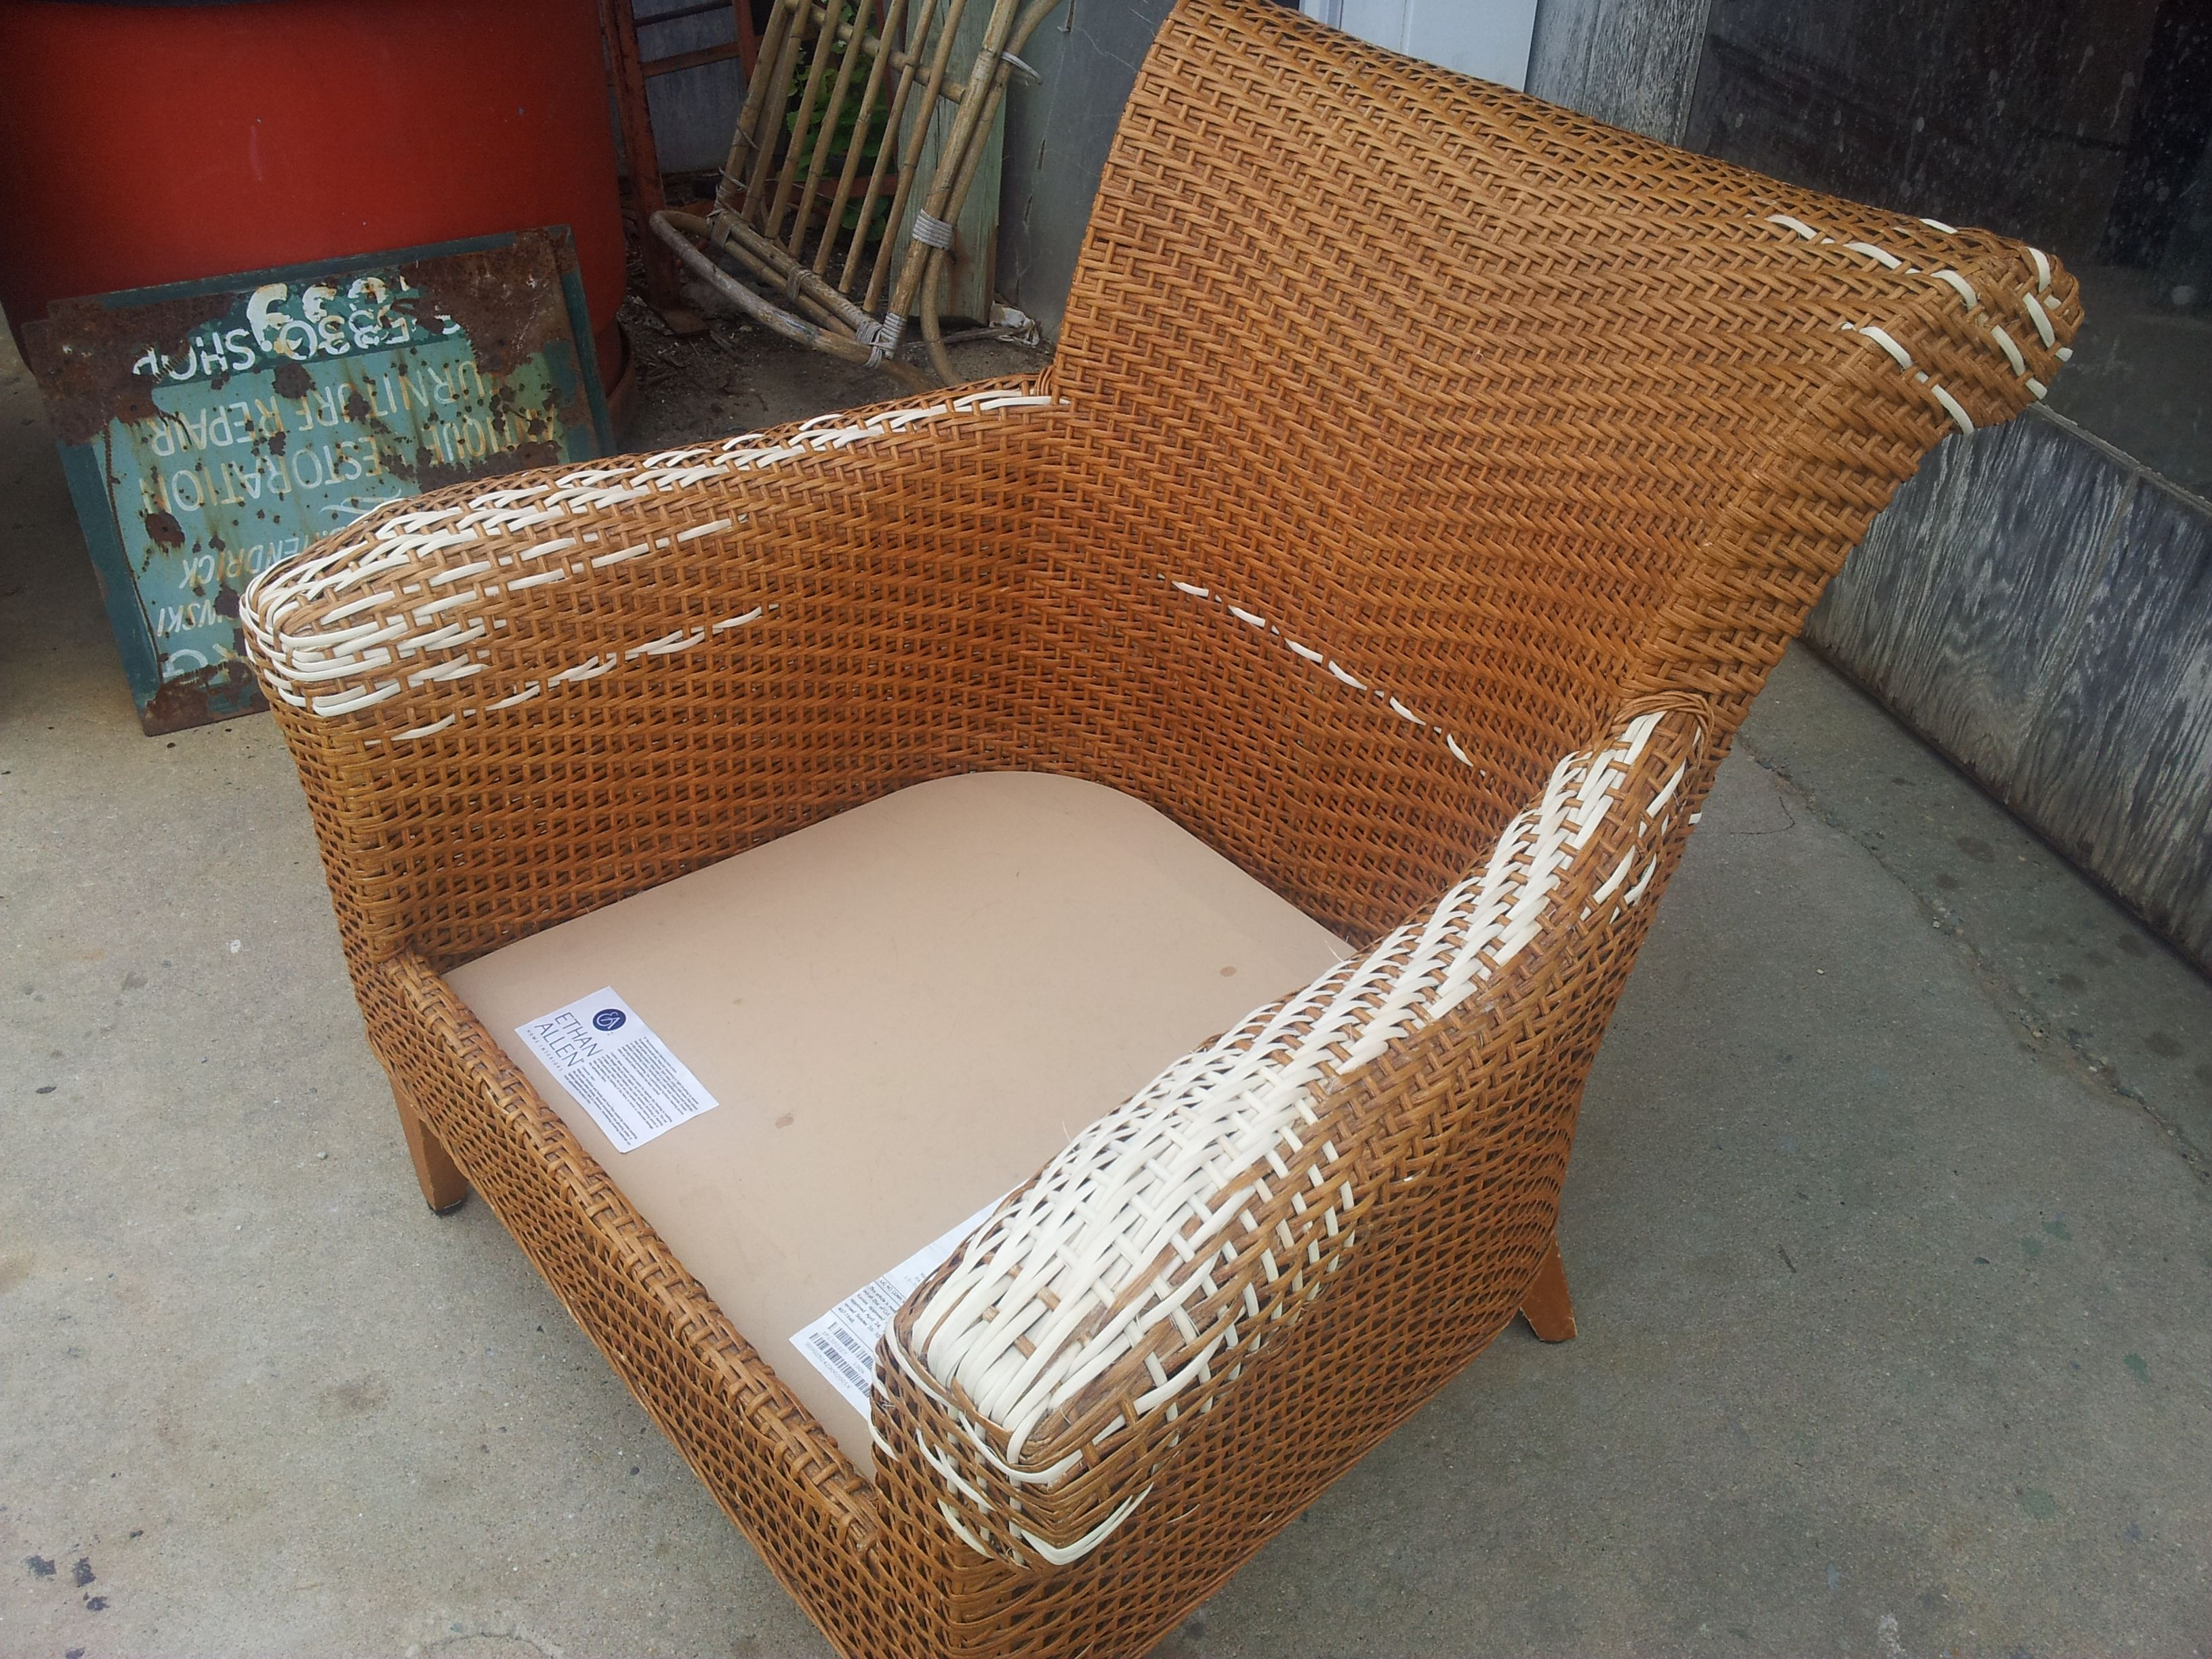 rattan chair repair kit dark gray covers ethan allen arm repaired caning rush wicker